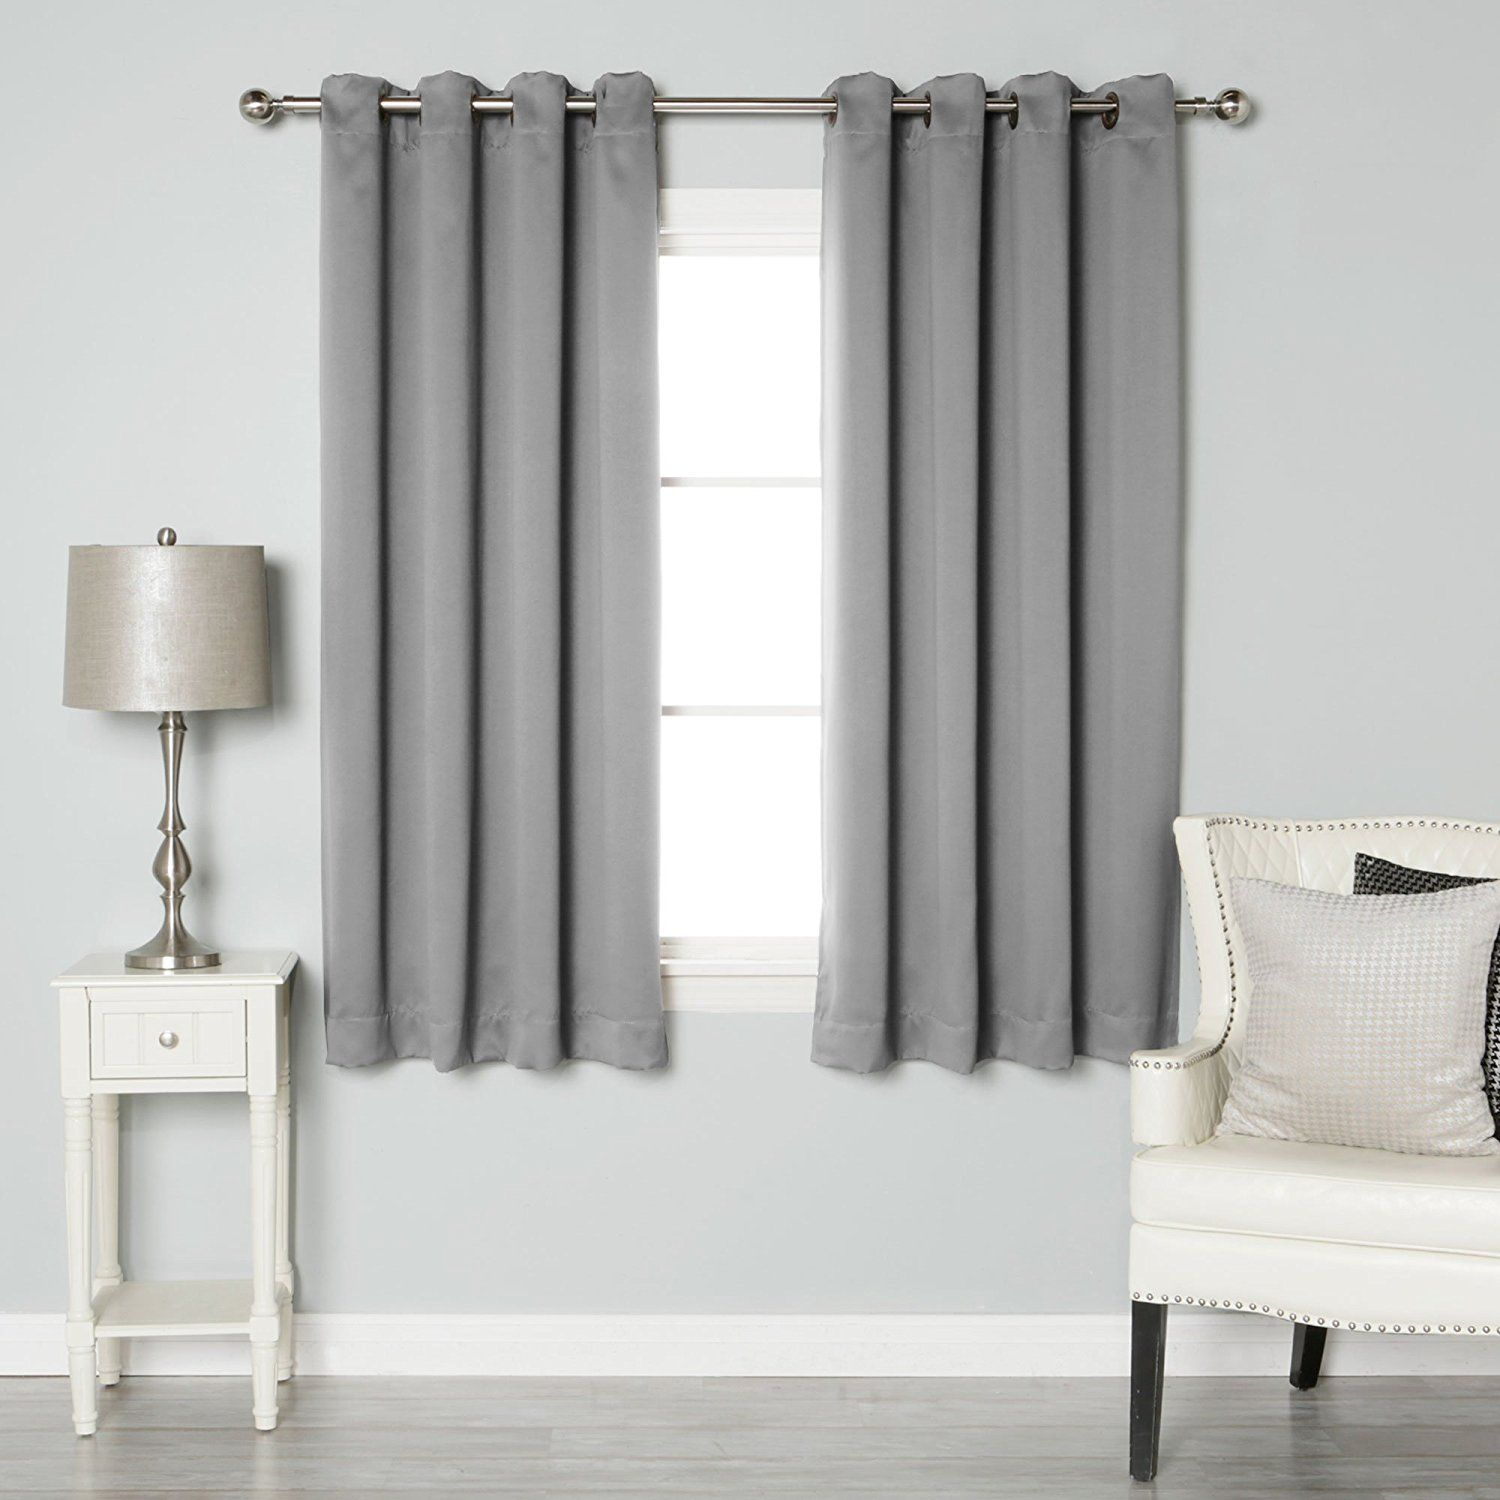 Best Home Fashion Thermal Insulated Blackout Curtains Antique